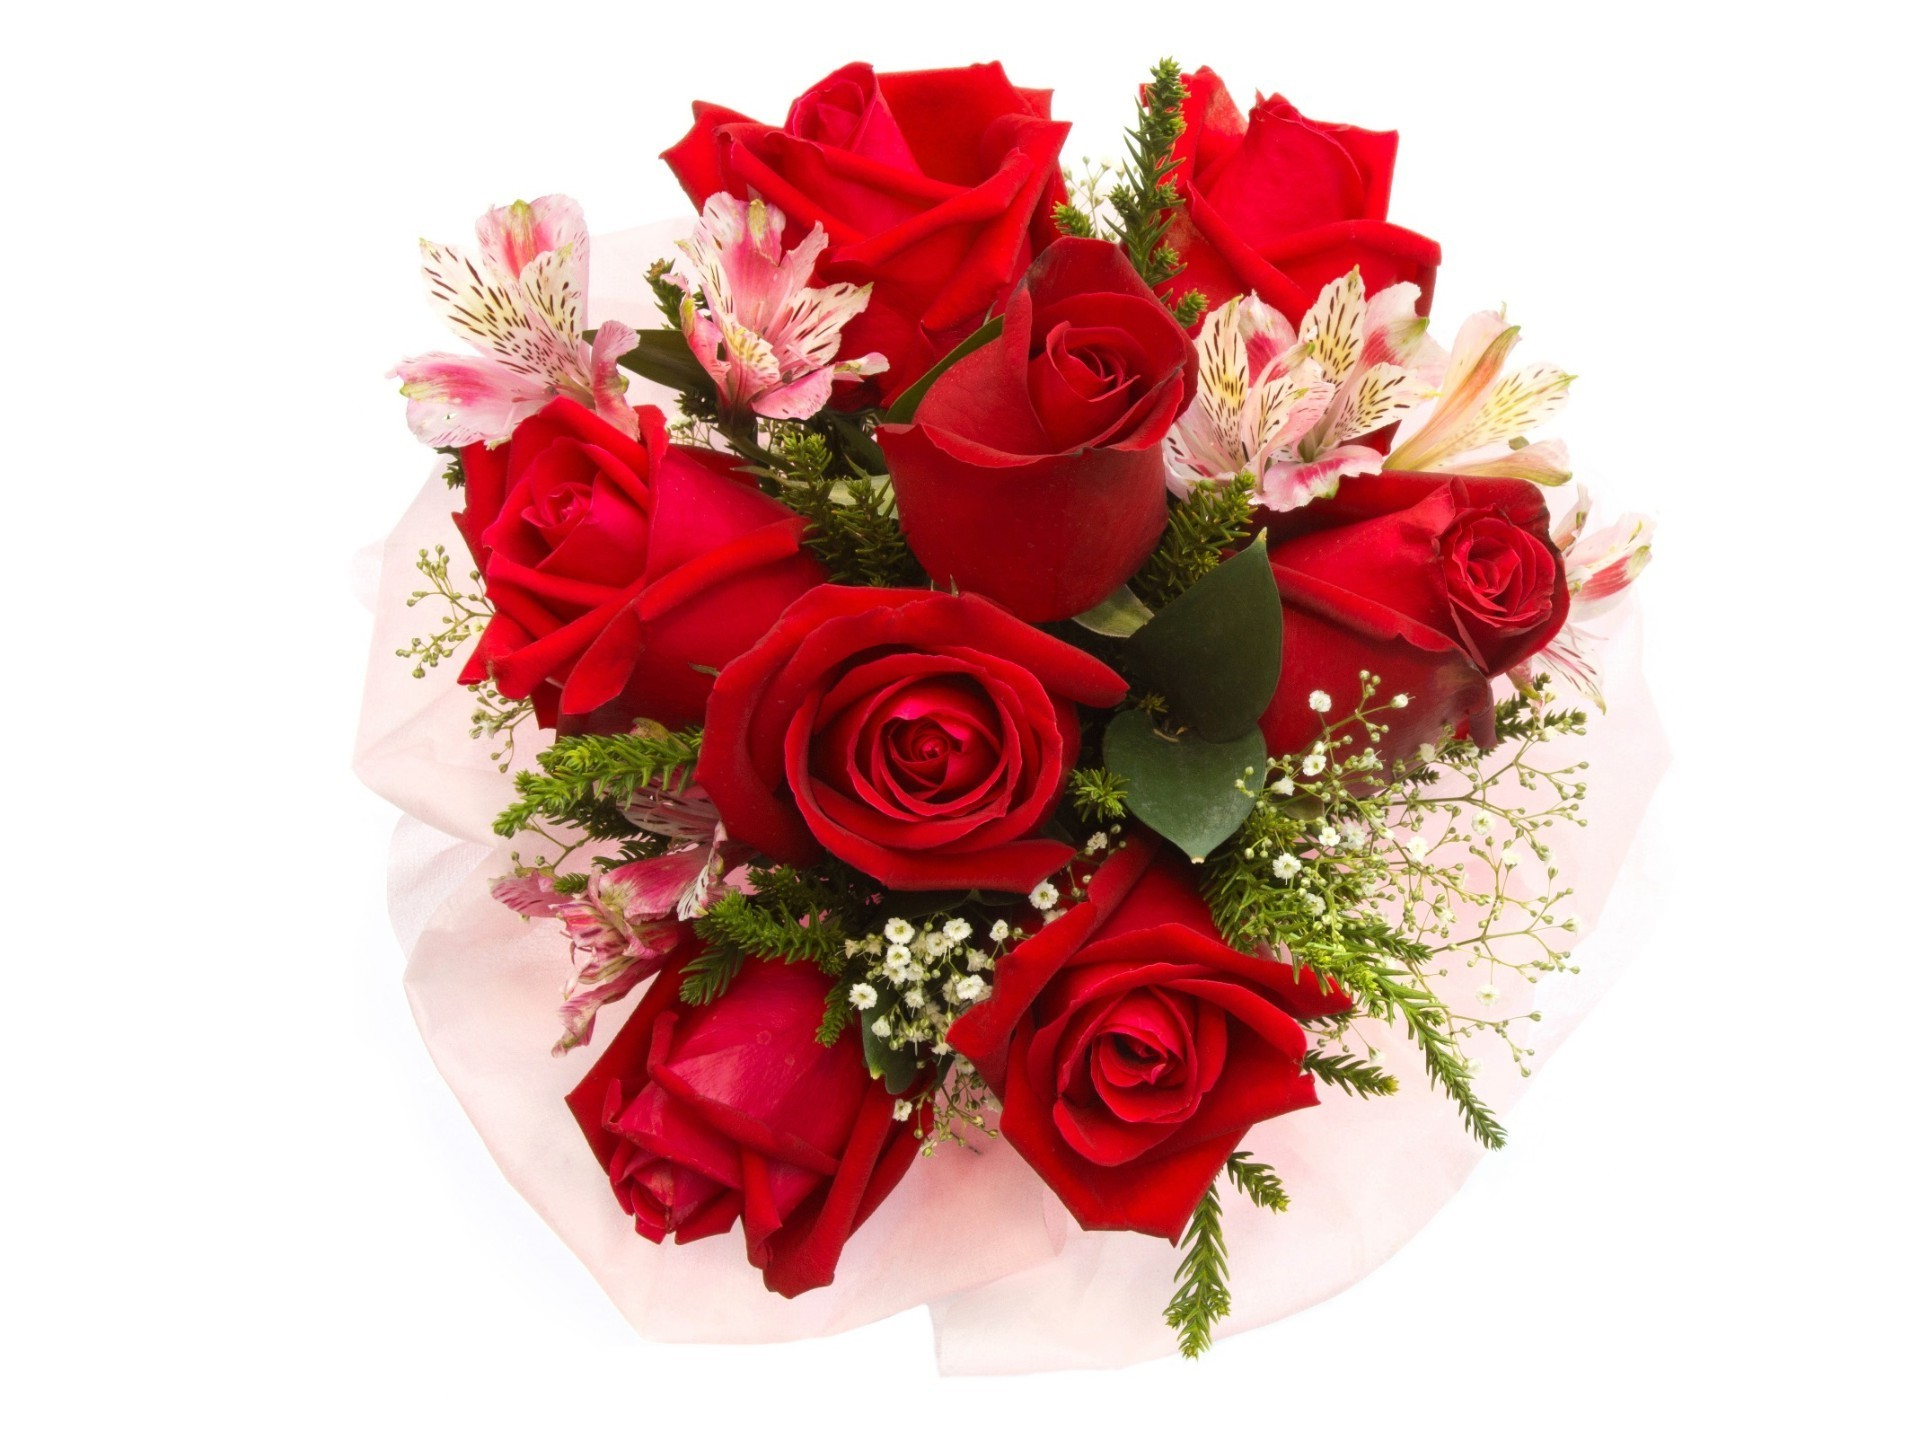 Red roses with small pink flowers